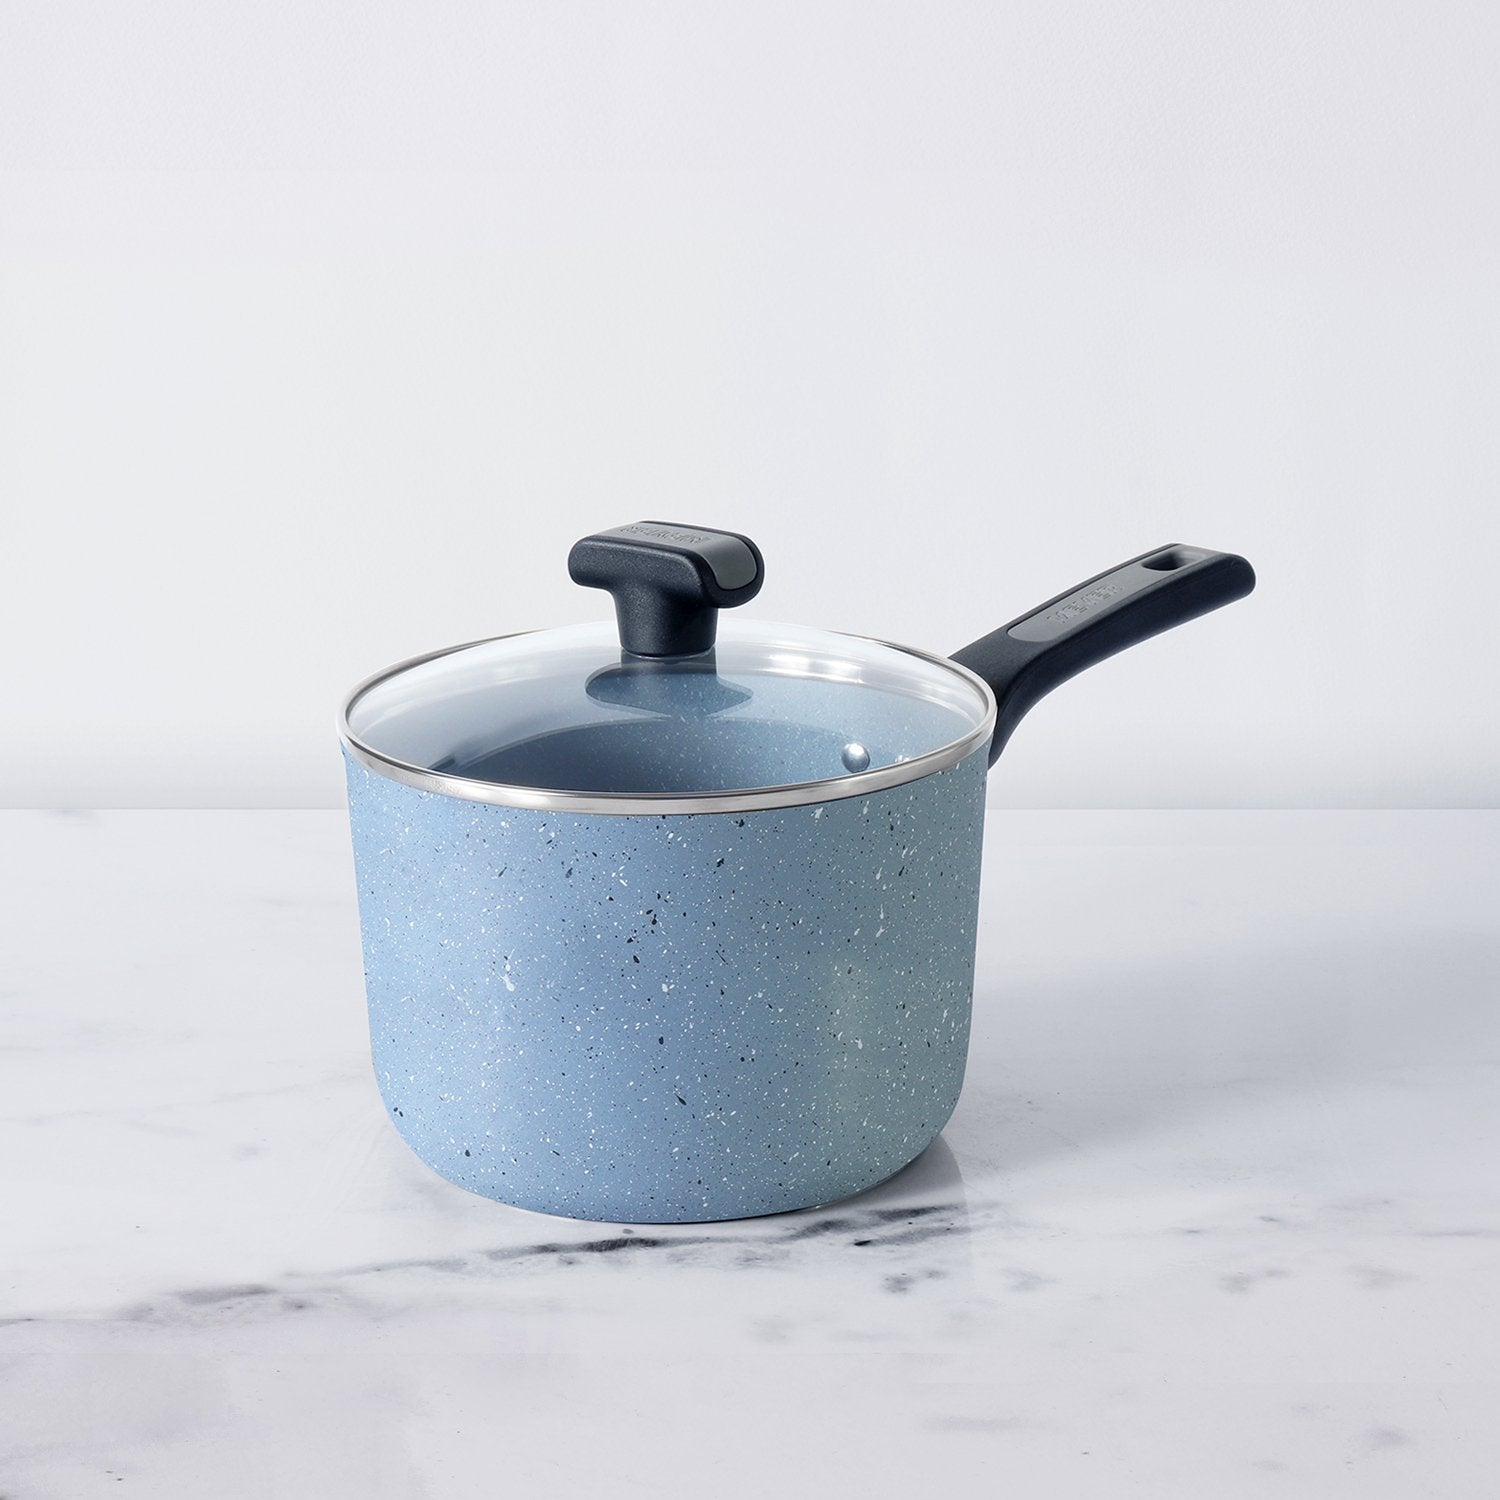 Forgestone Non-Stick Saucepan 18cm, Stone Grey [Induction & Gas Compatible] - Pots and Pans